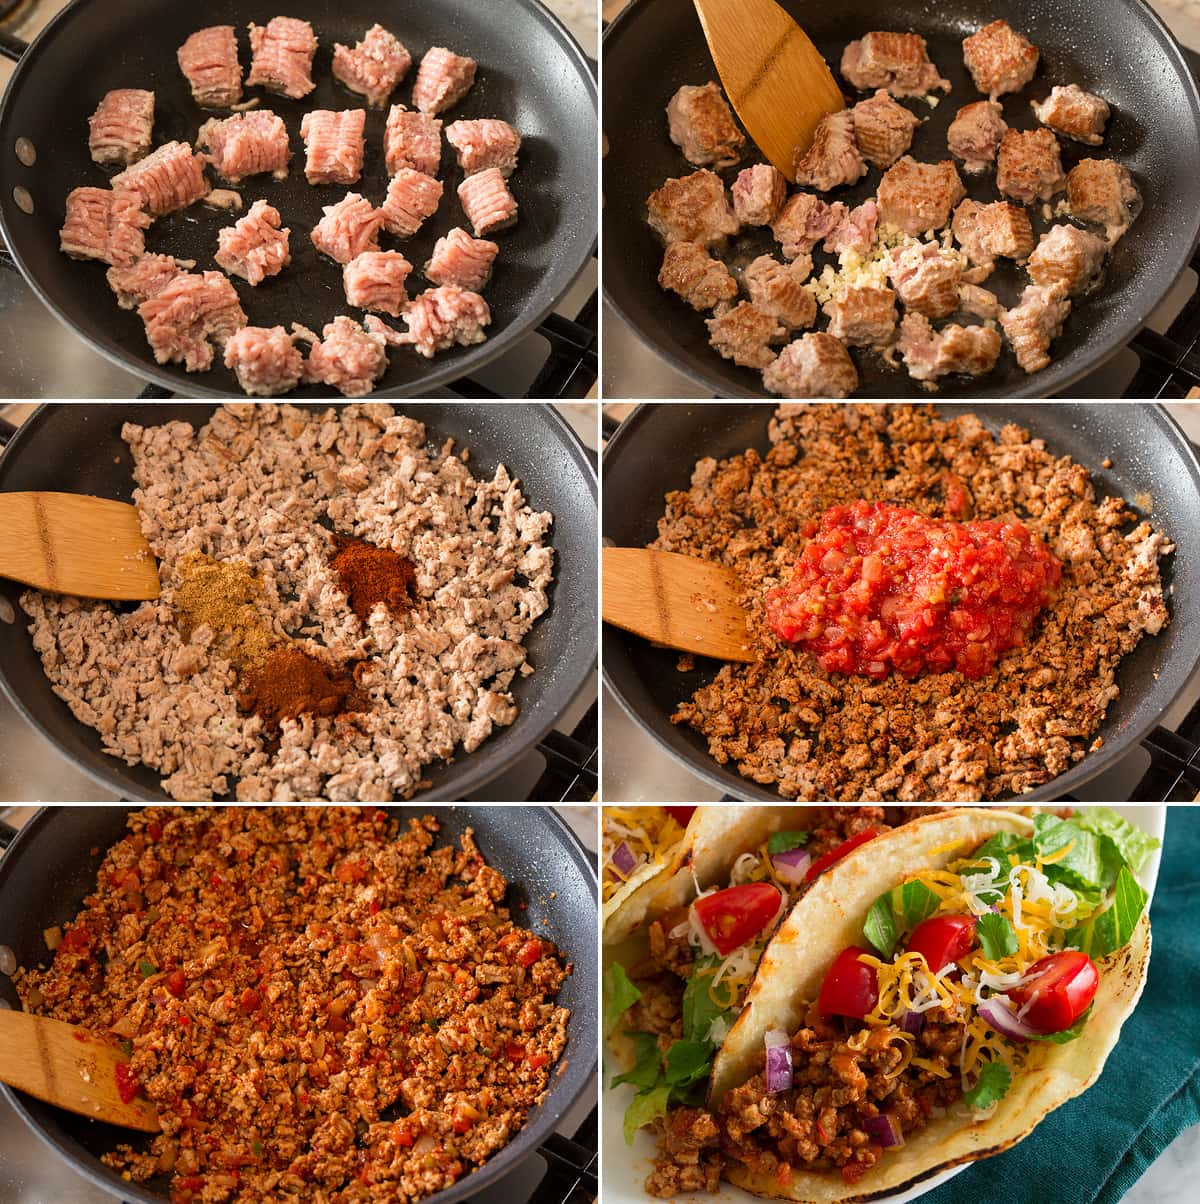 Collage of six photos showing steps to making turkey taco meat in skillet, then final image showing finished assembled taco.